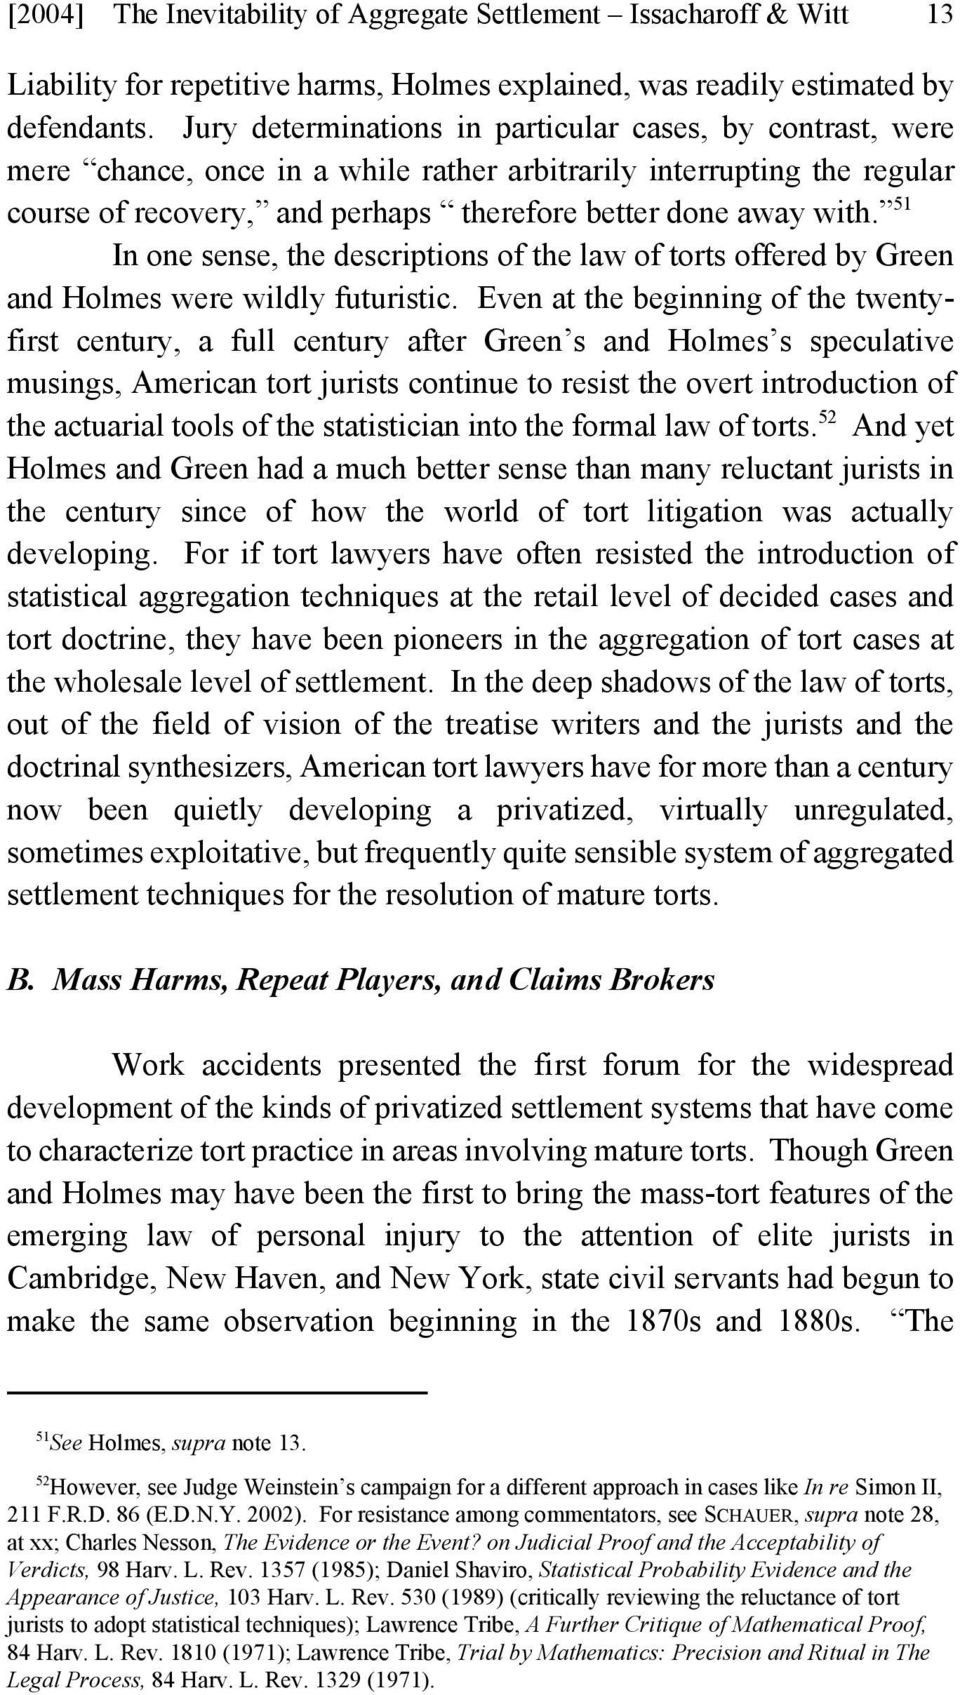 51 In one sense, the descriptions of the law of torts offered by Green and Holmes were wildly futuristic.